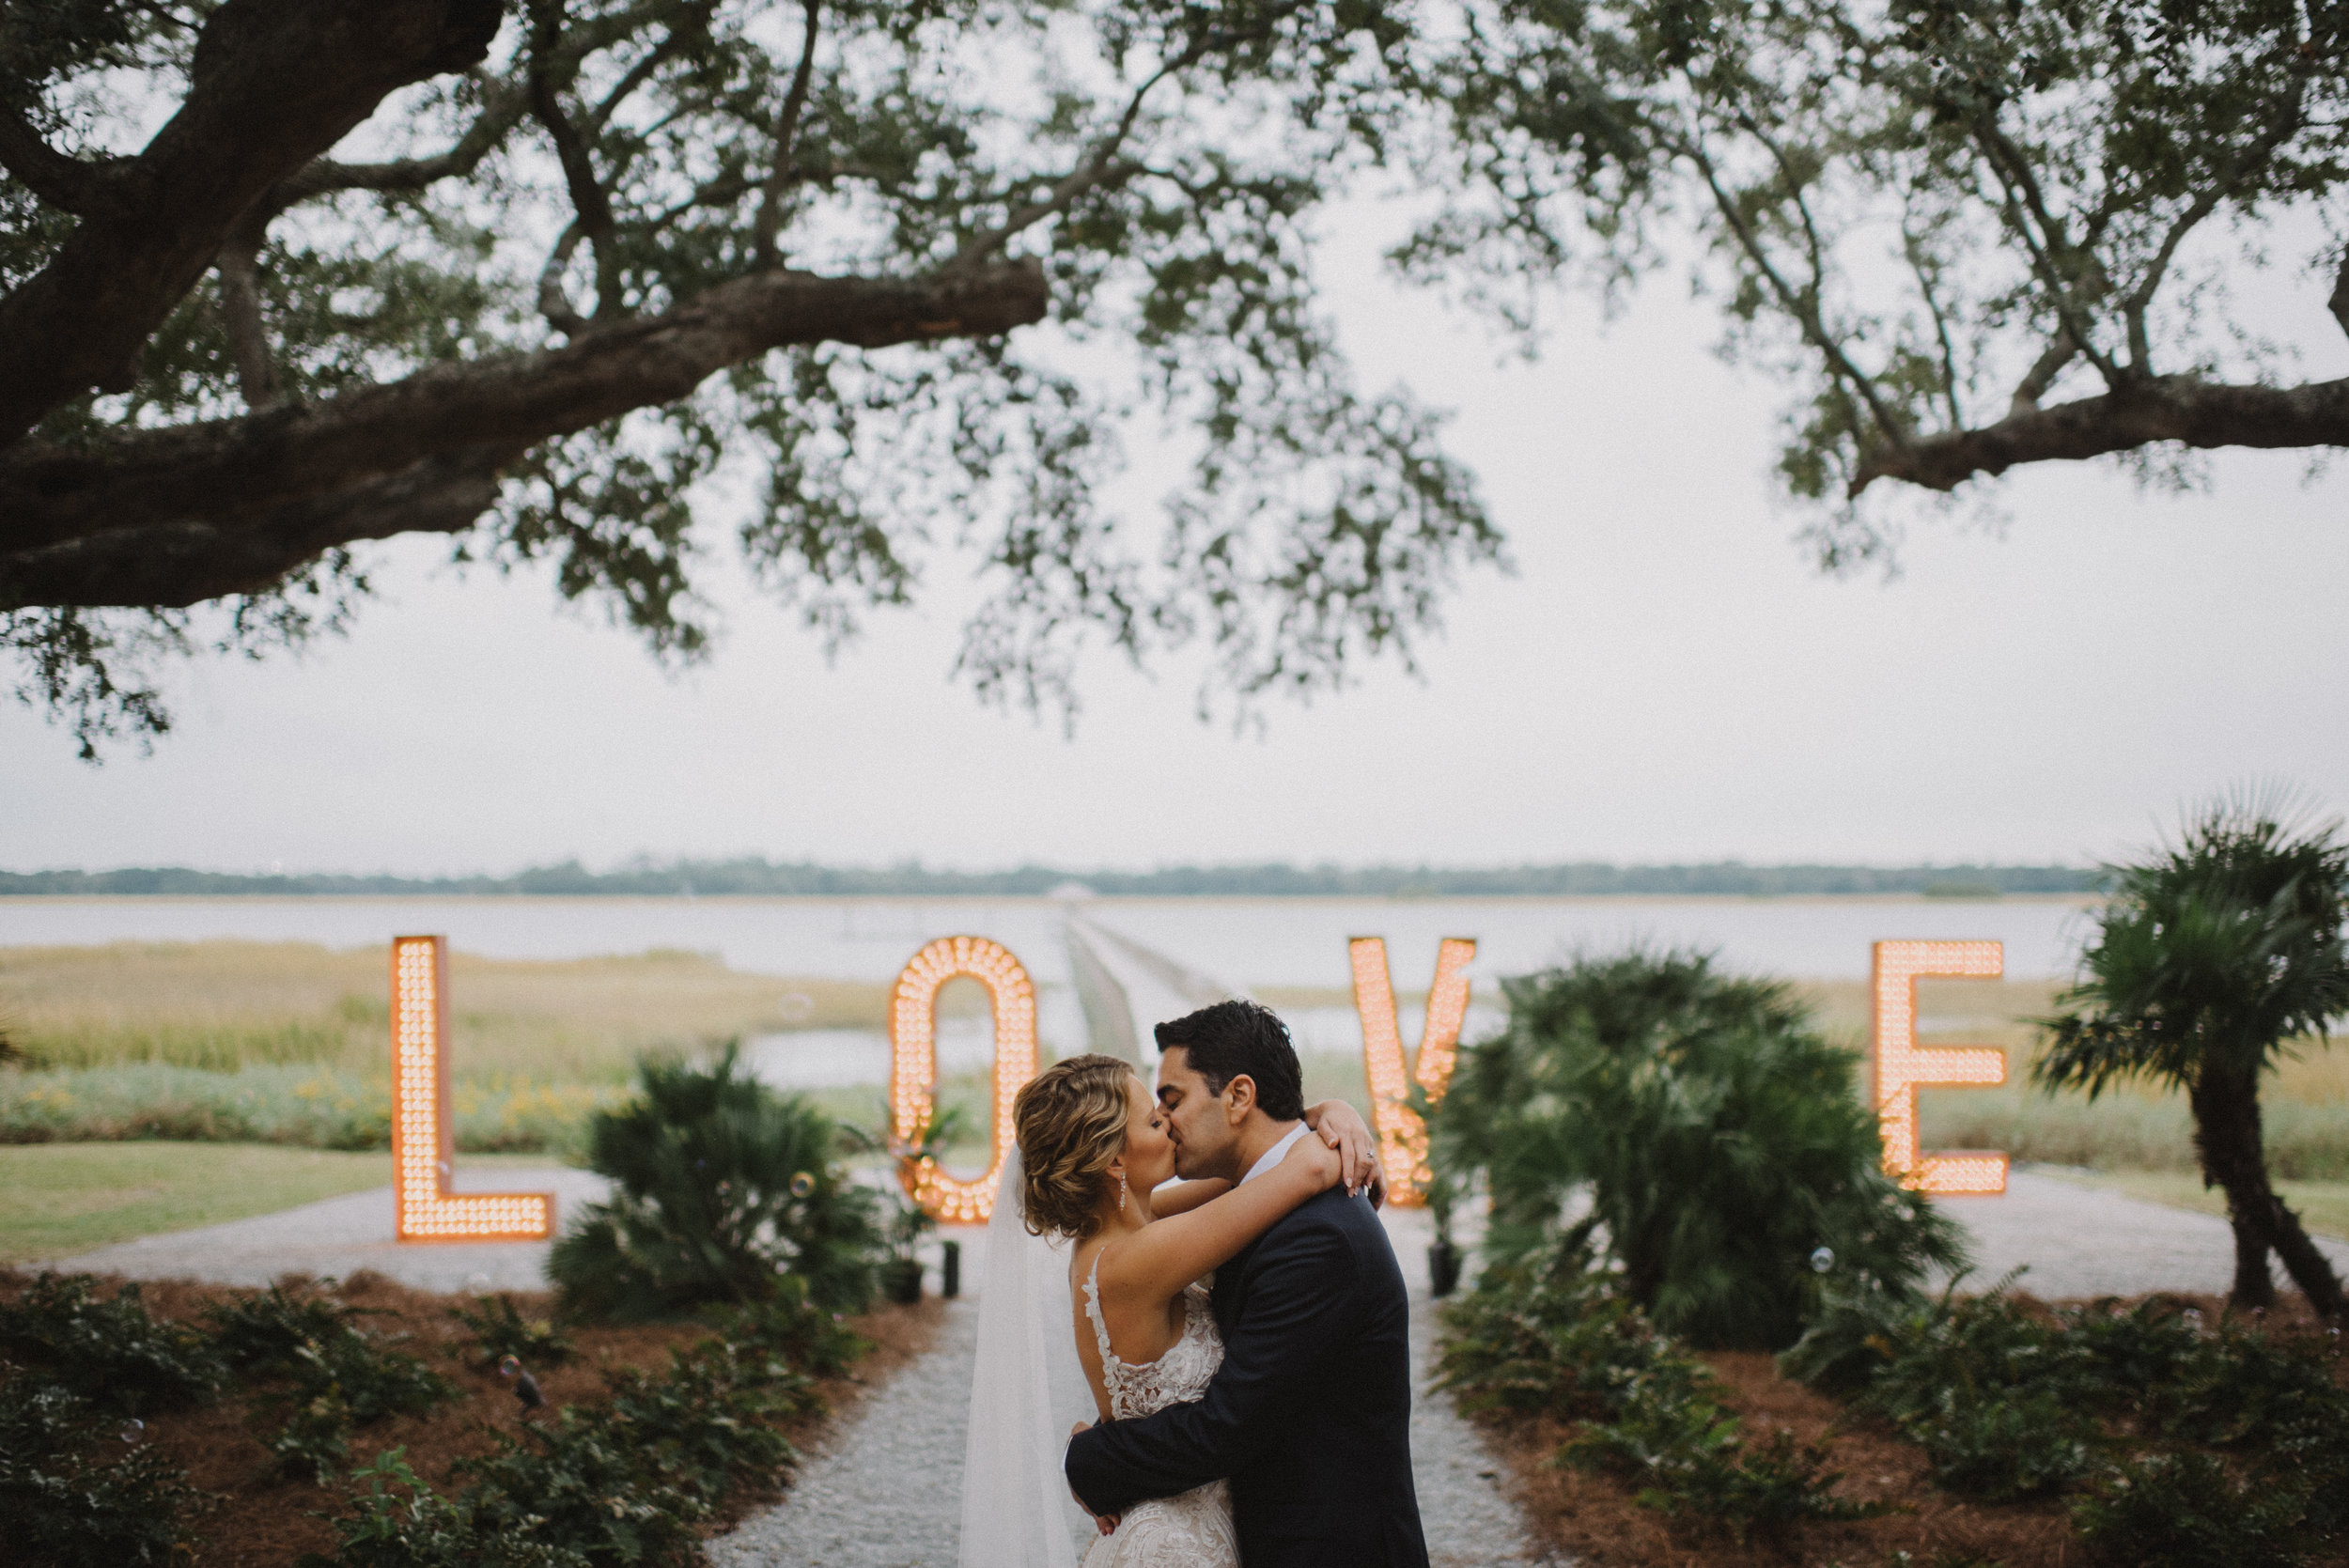 Wedding Video Tips - Here's our tips on how you can help us make your video the BEST it can be. At the end of the day it's YOUR wedding so these are just recommendations based on our professional experience.